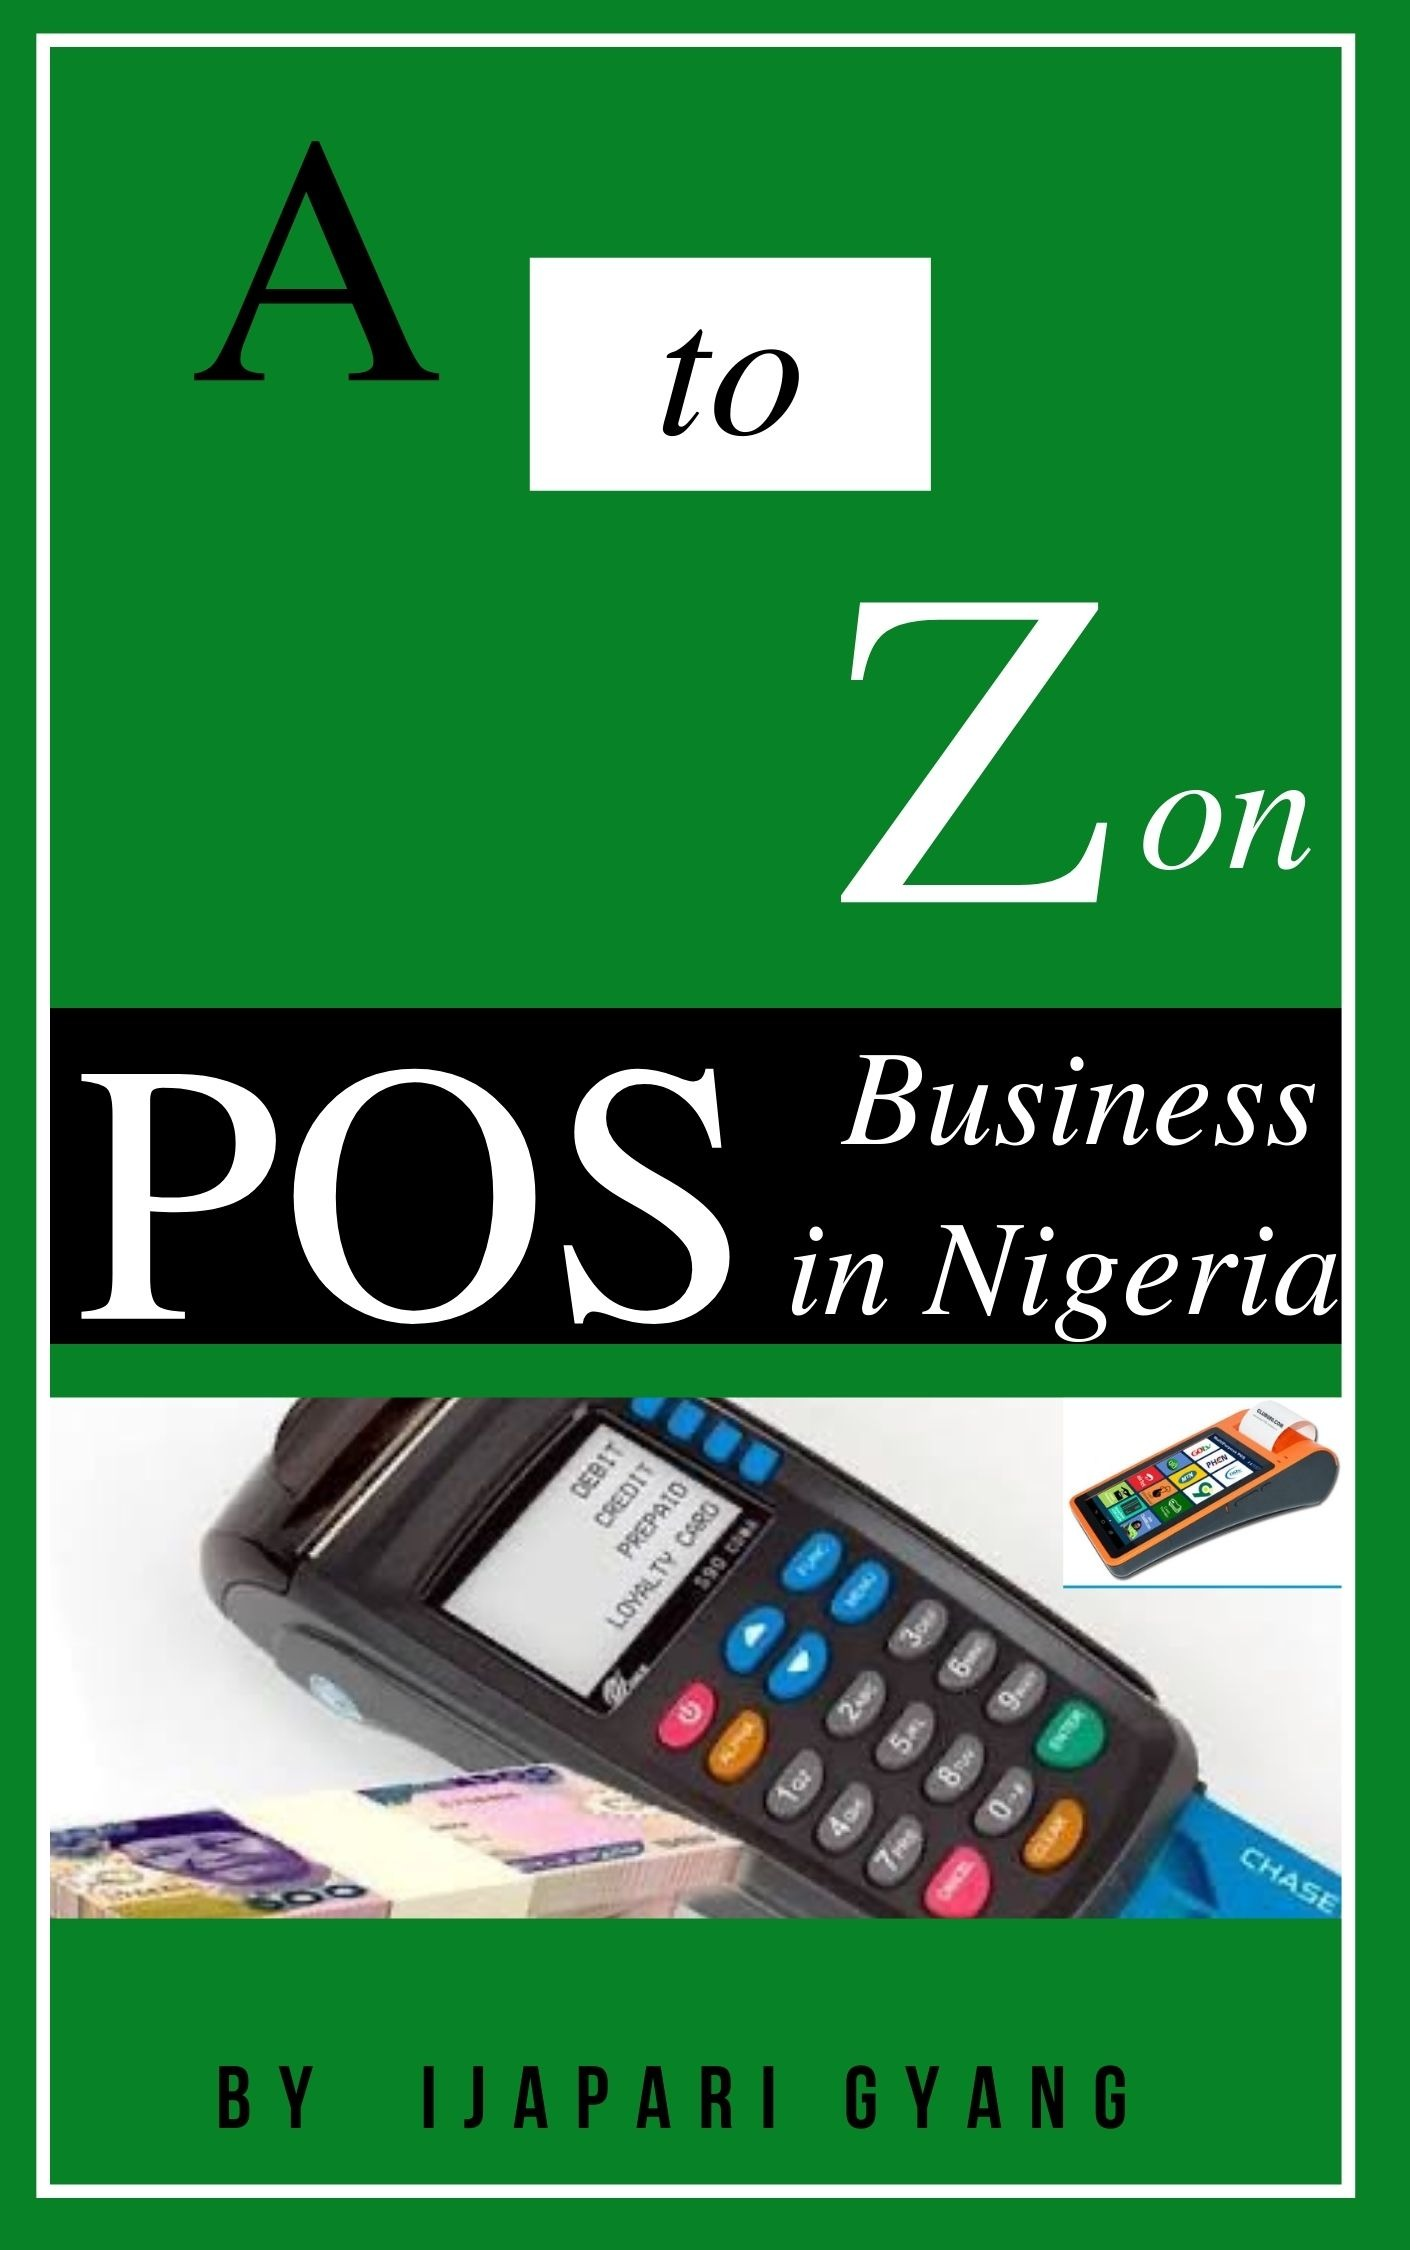 A TO Z OF POS BUSINESS IN NIGERIA